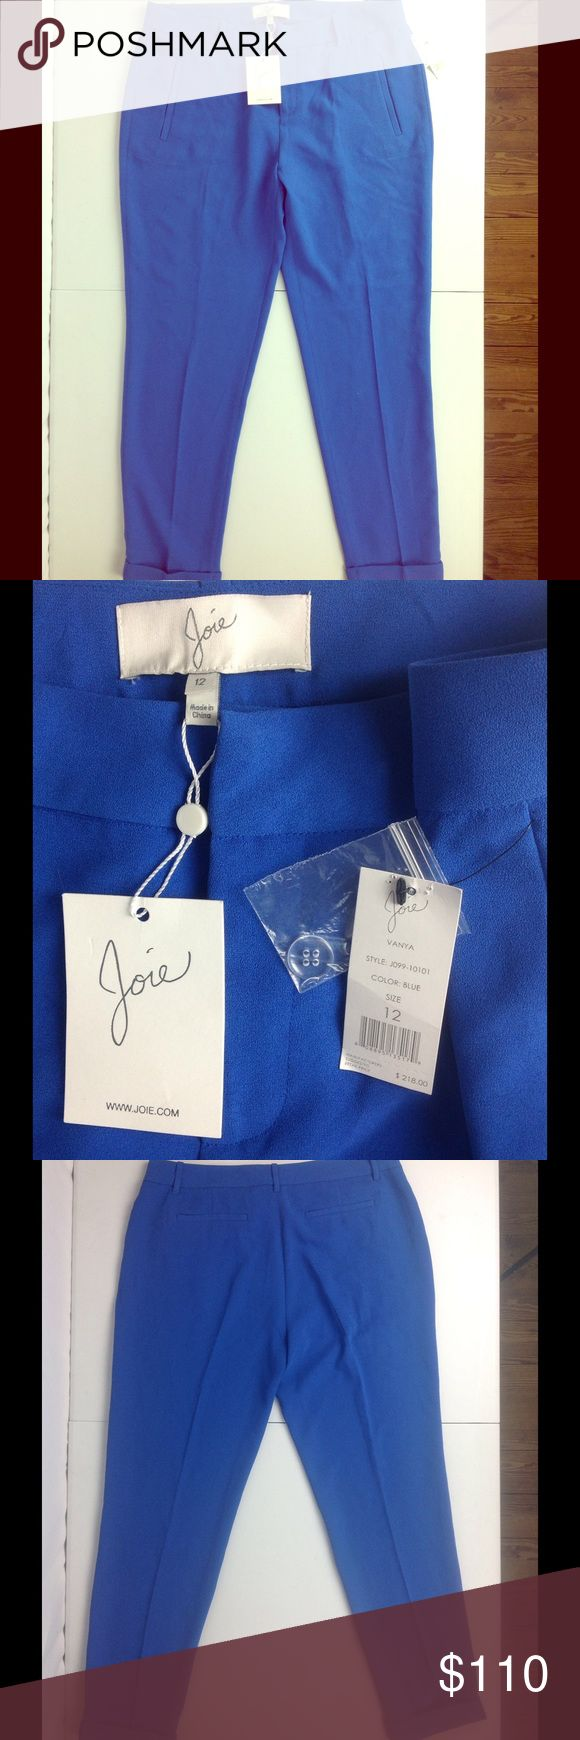 NWT Joie Dress Pants Size 12 Bright Royal Blue New with tags. Joie Pants